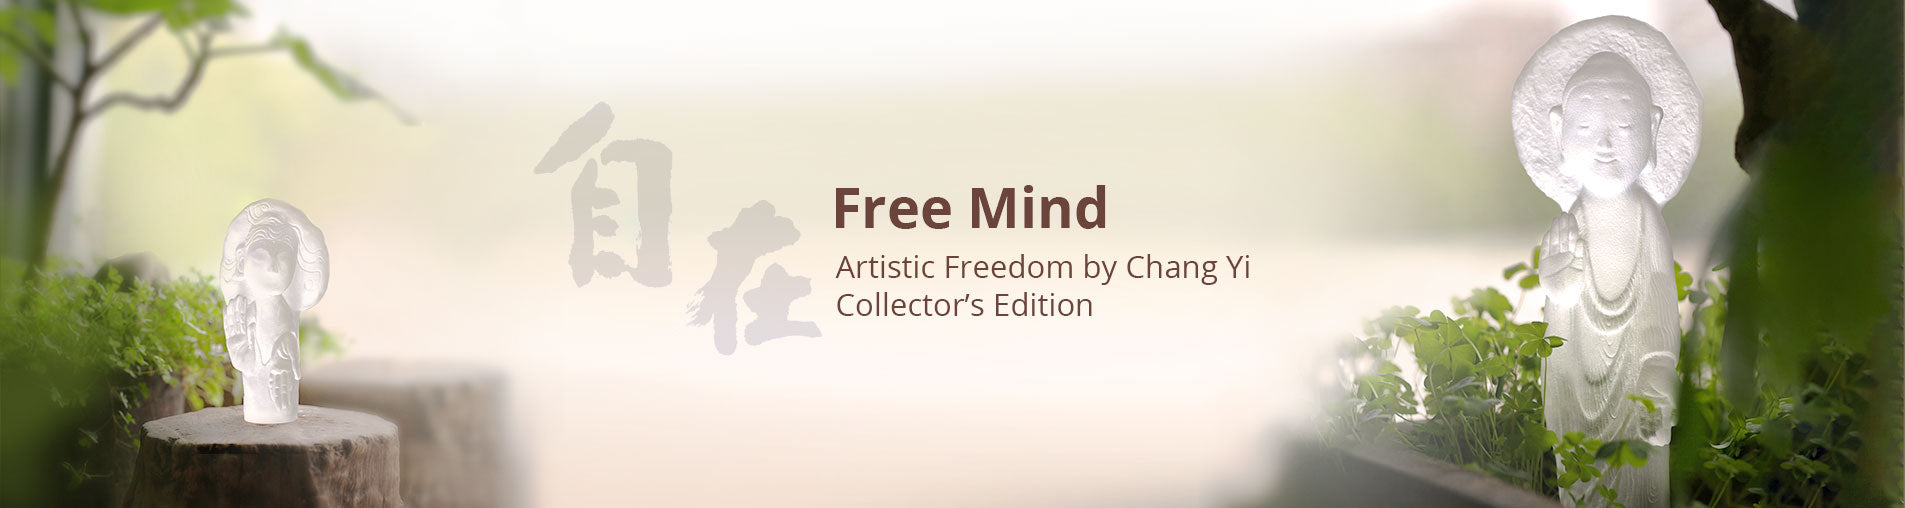 Free Mind Crystal Art Collection